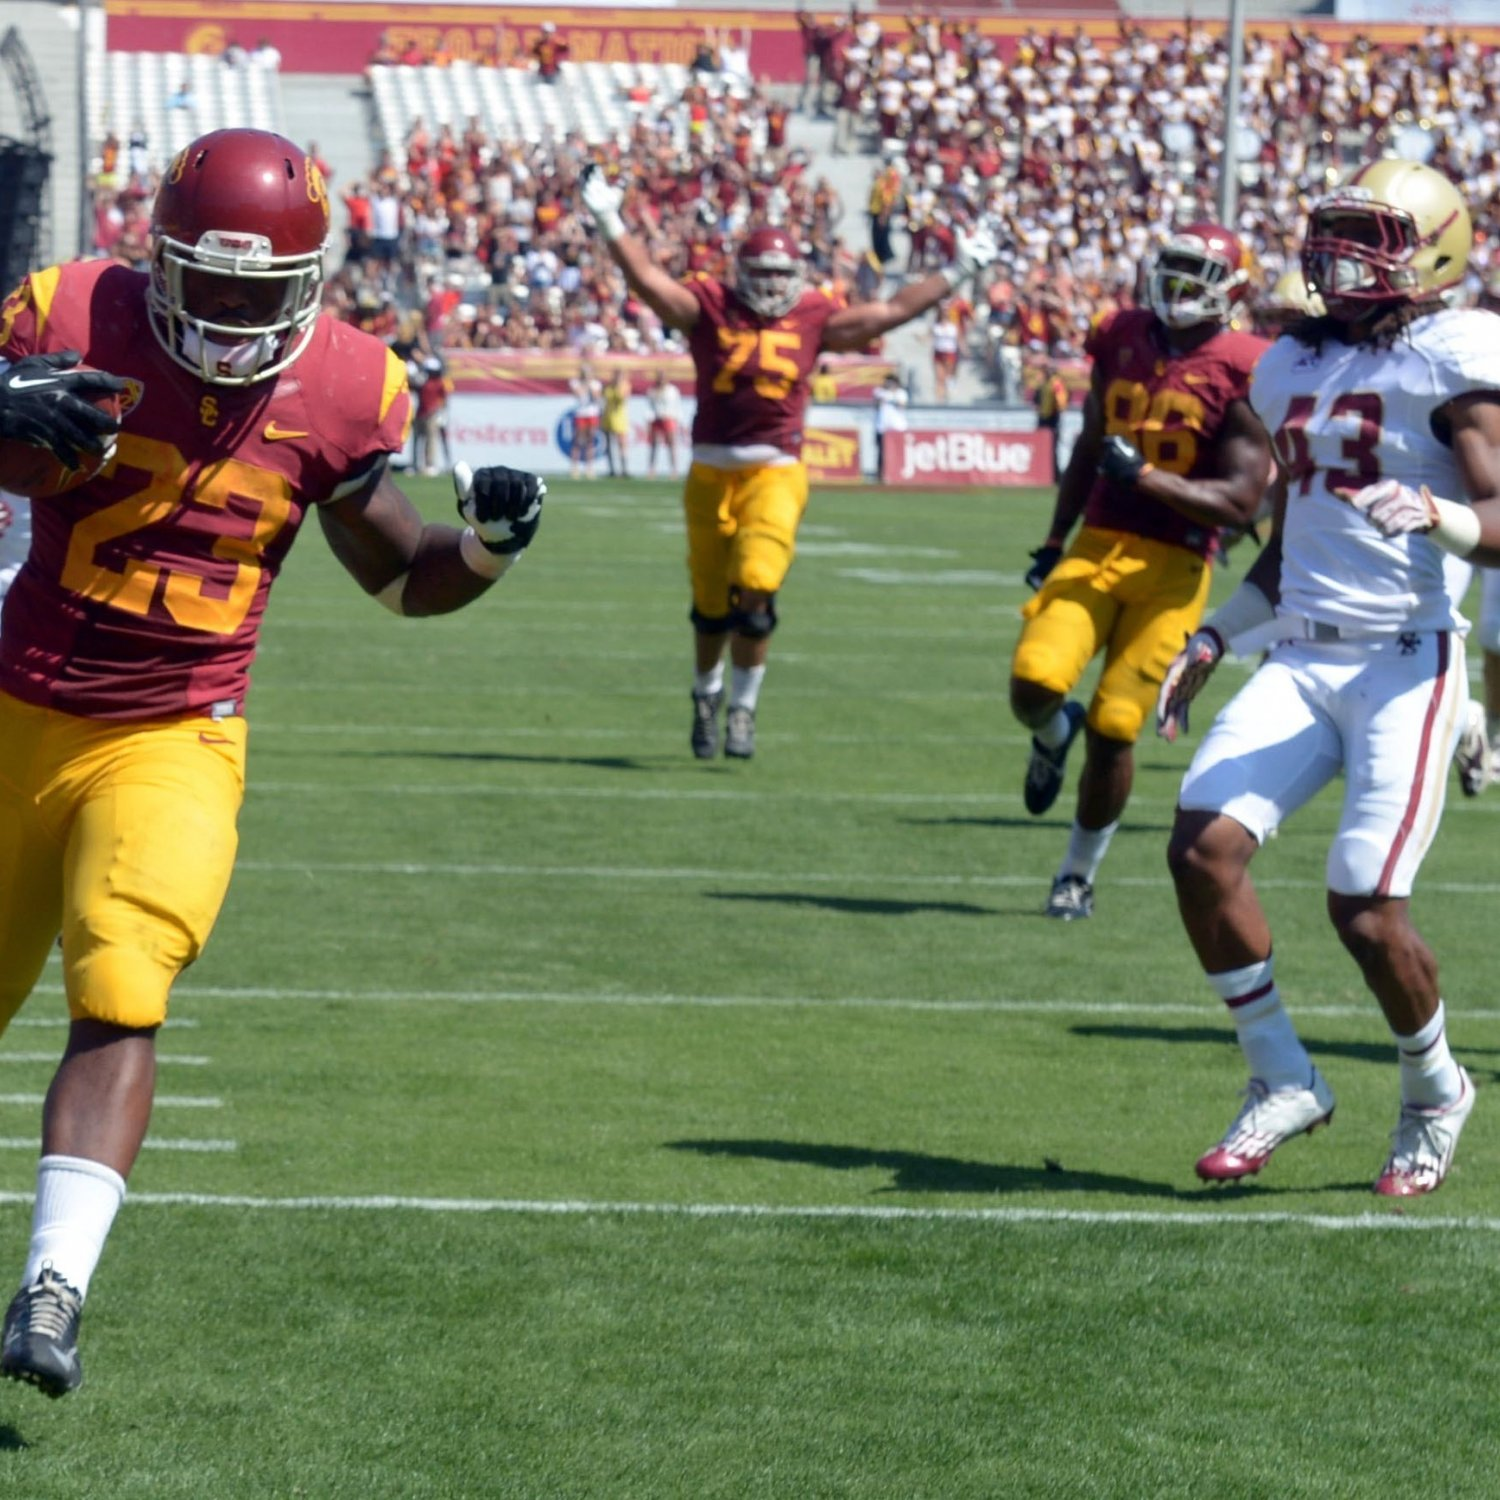 Kevon Seymour Usc The Latest USC Trojans...